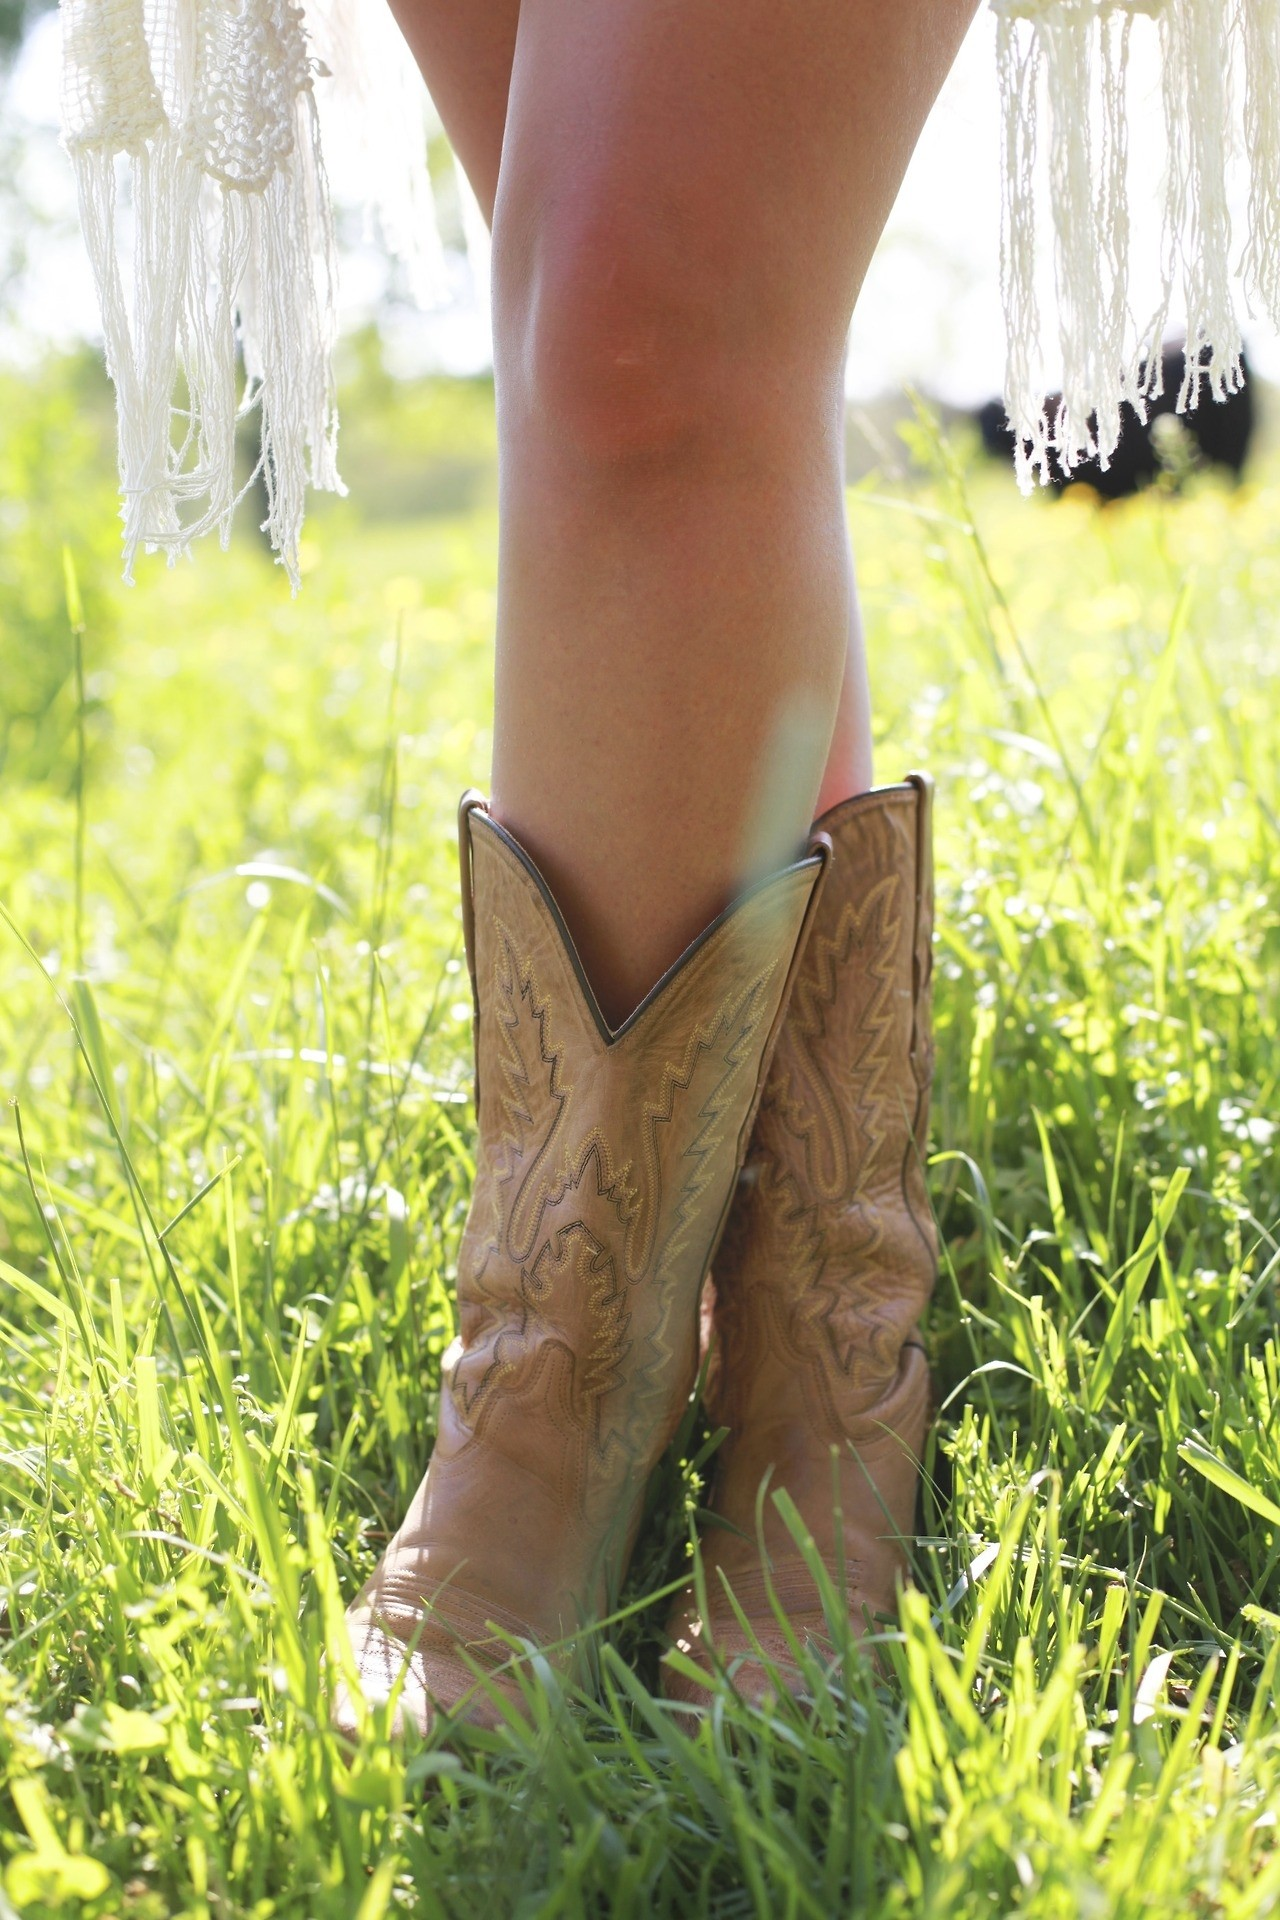 Res: 1280x1920, Cowboy boots couple background - photo#16